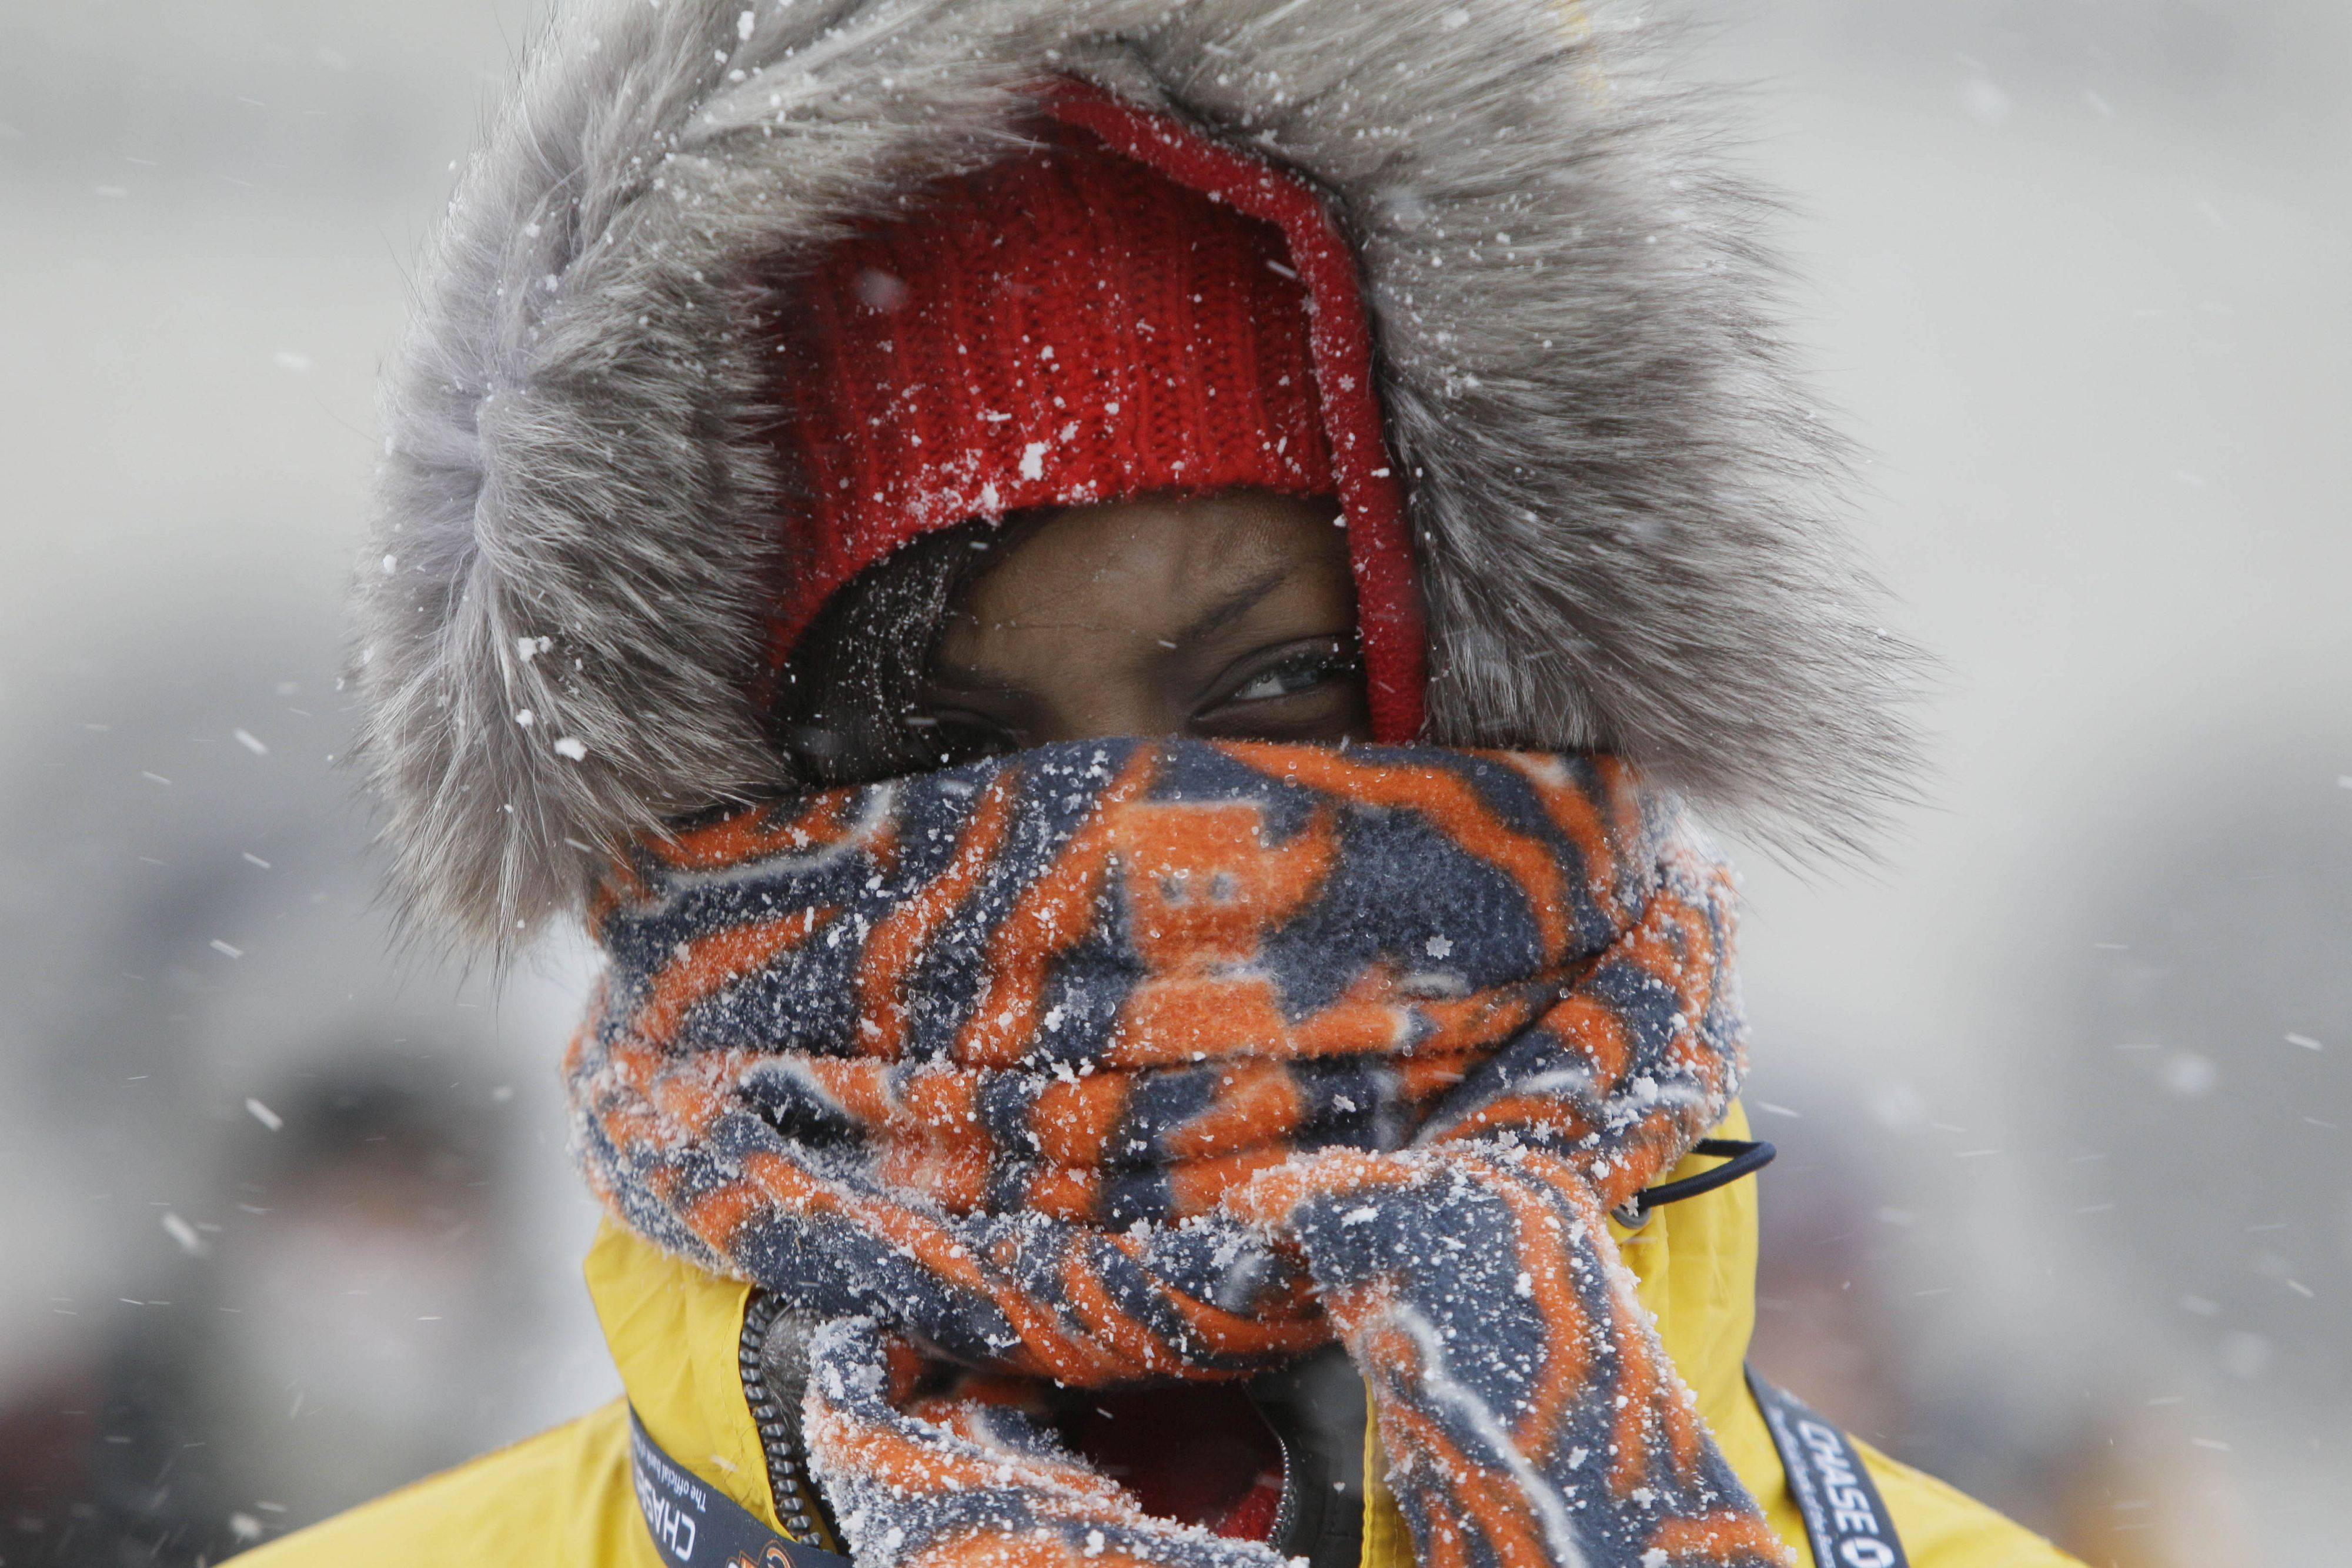 Chicago Bears fan Janise Ford arrives bundled up during a snowstorm at Soldier Field before an NFL football game between the Bears and the Patriots in Chicago.